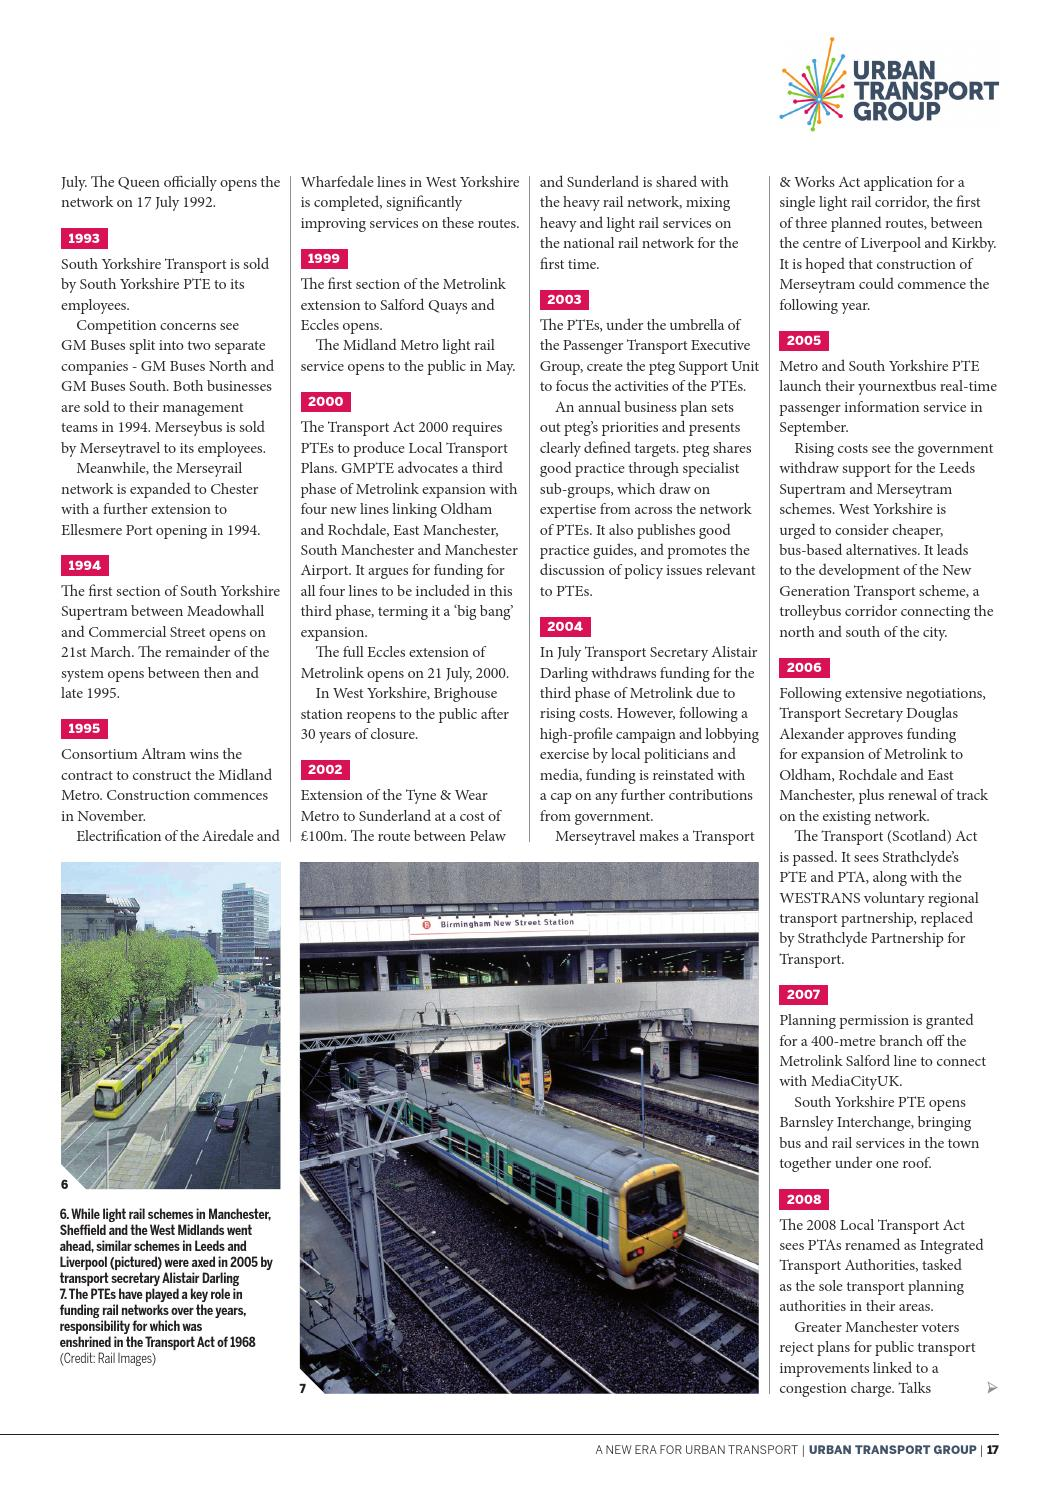 Urban Transport Group: A New Era For Urban Transport by